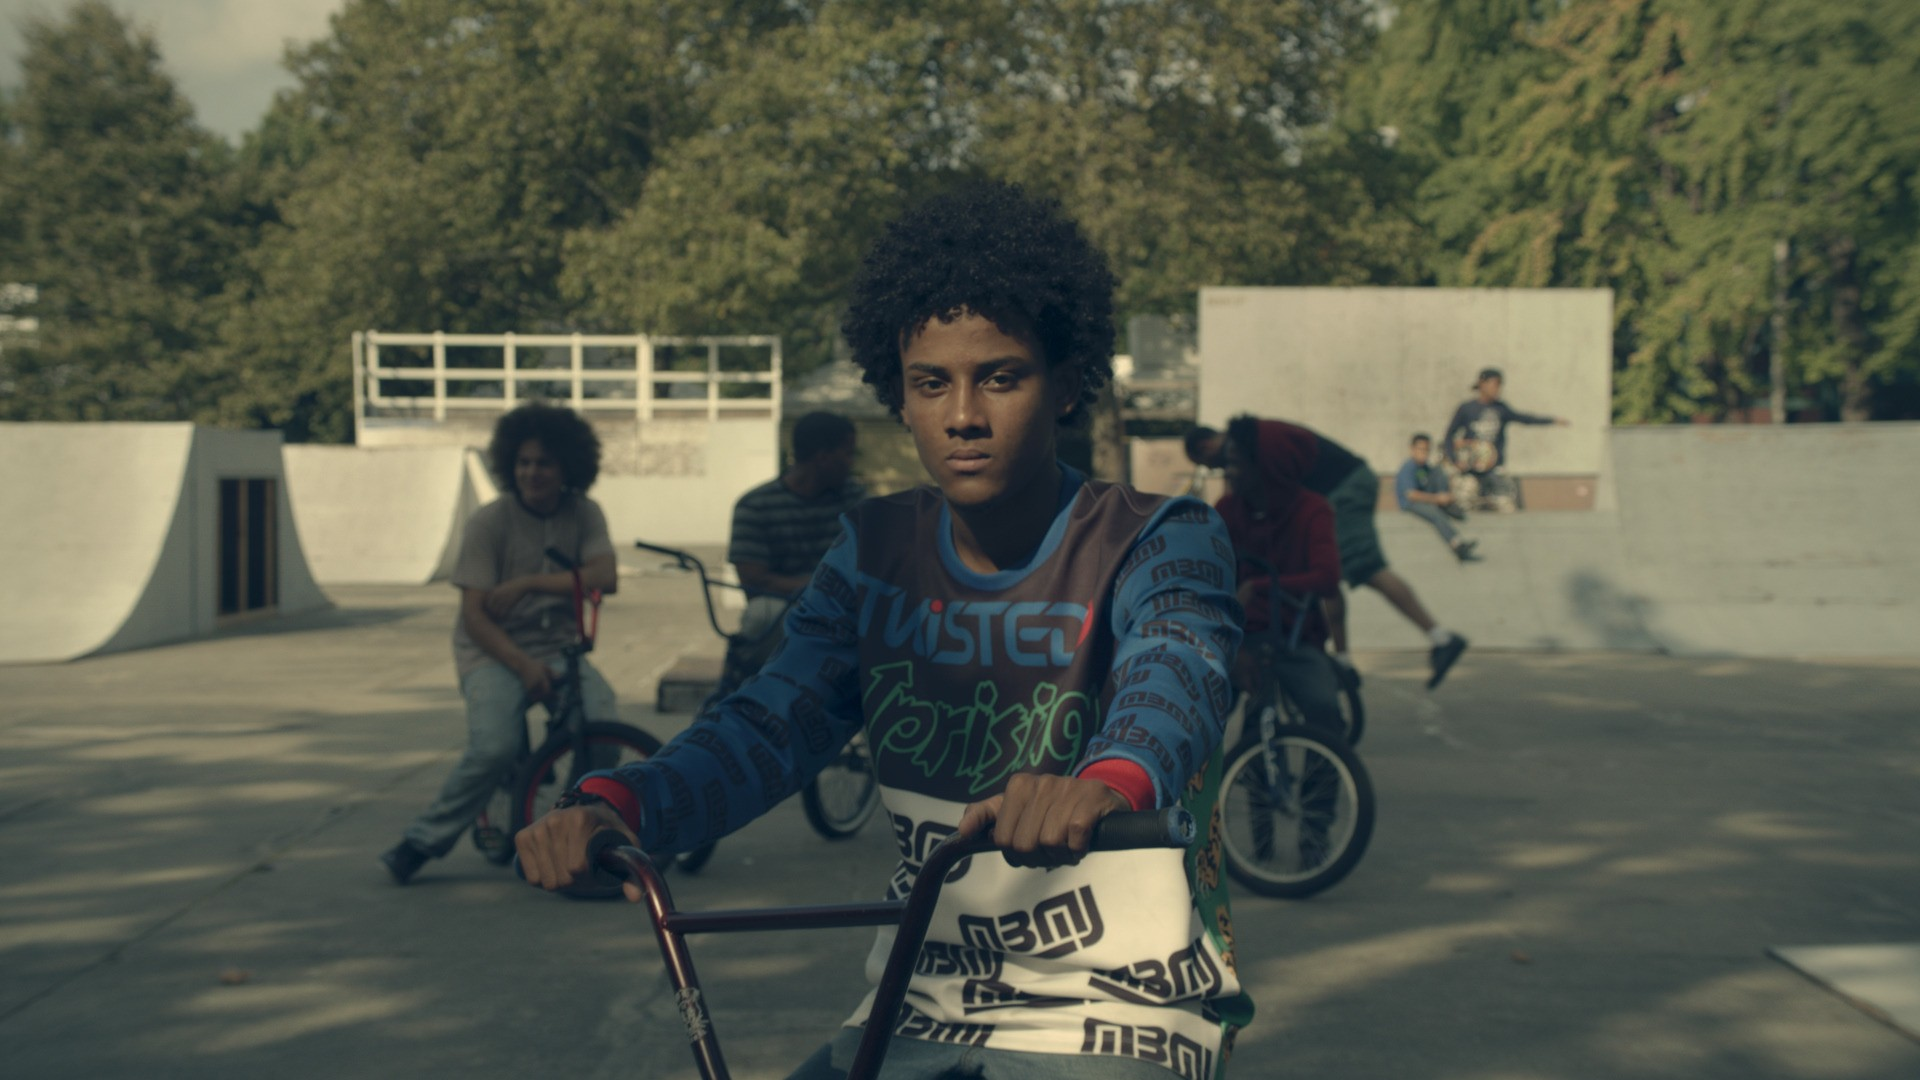 marc jacobs tribes: the bronx bmx crew